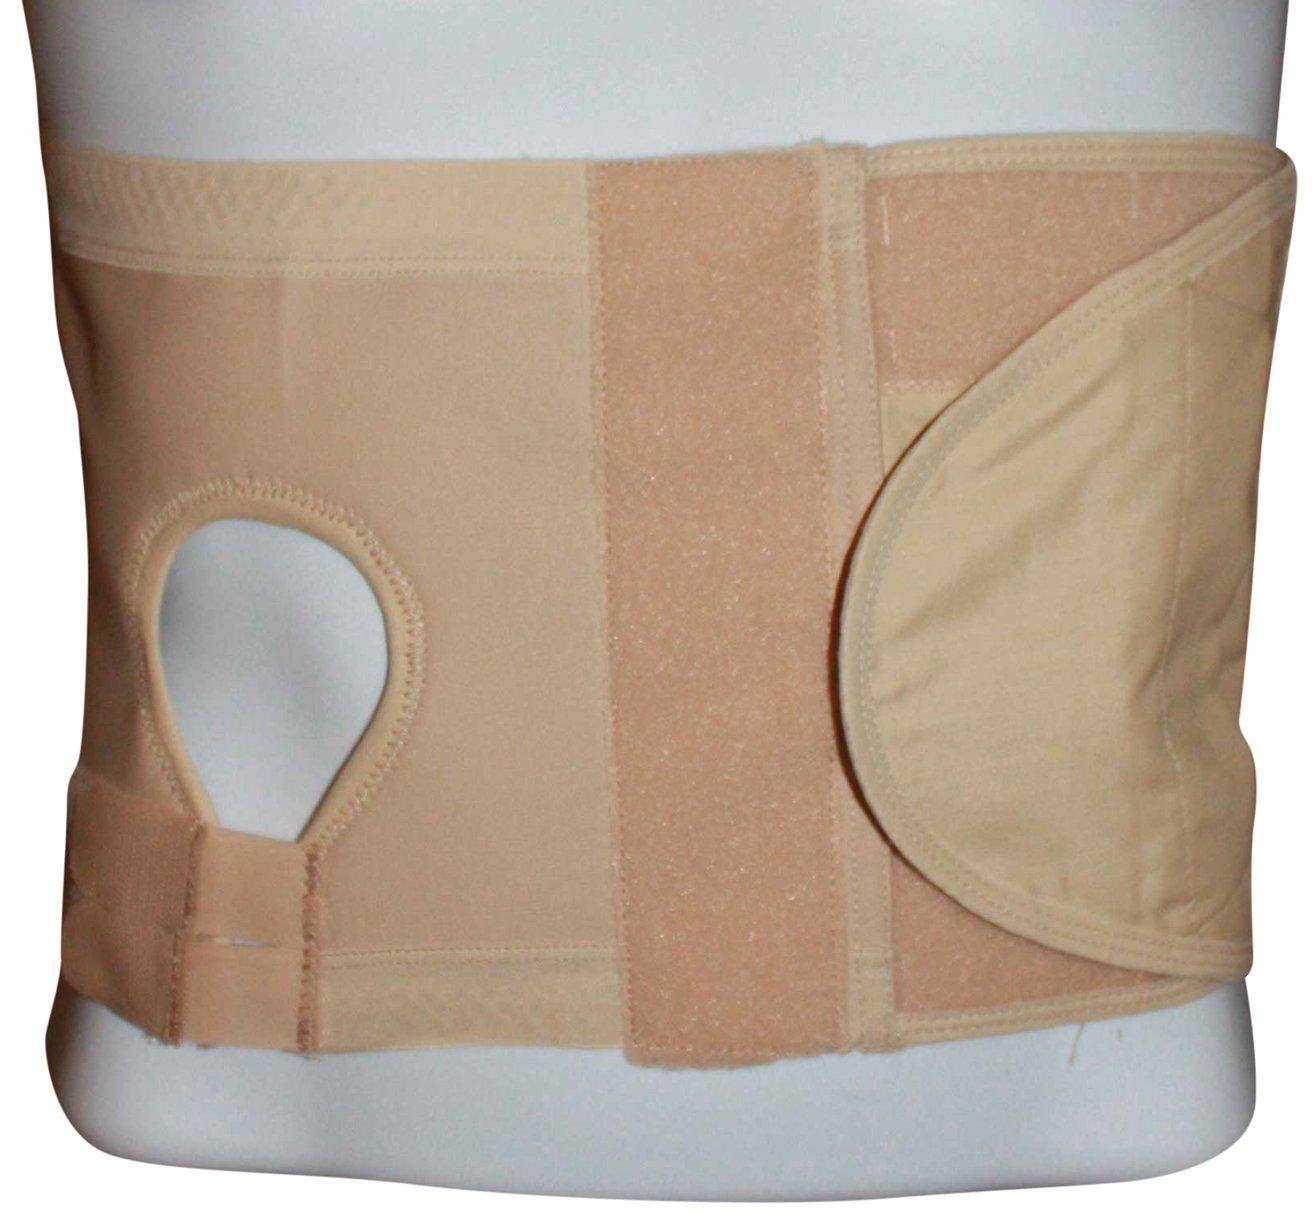 Safe n' Simple Right Hernia Support Belt with Adjustable Hole, 20cm, Beige, X-Small by Safe n' Simple